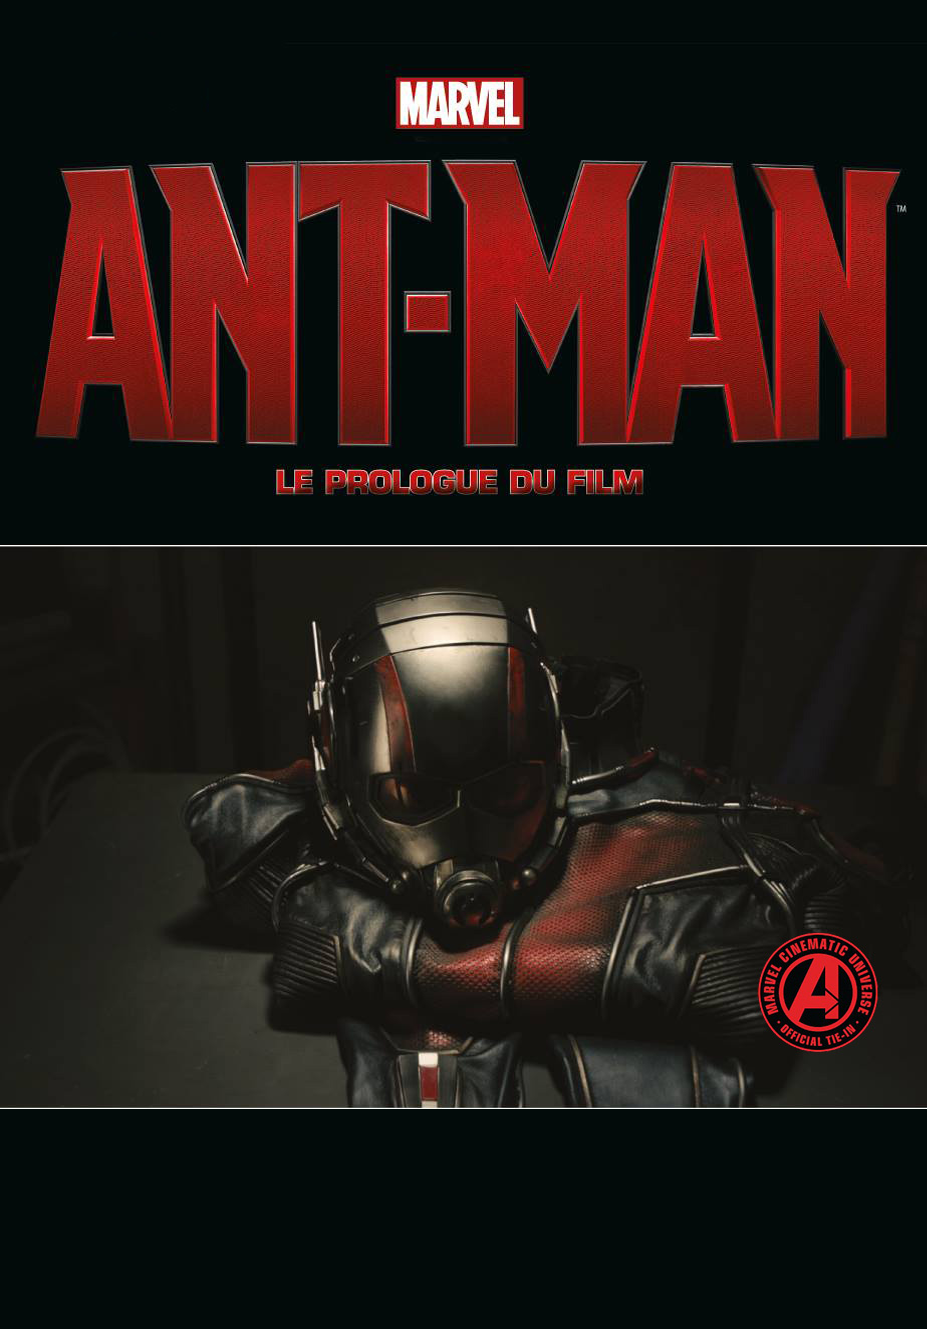 Antman prologue